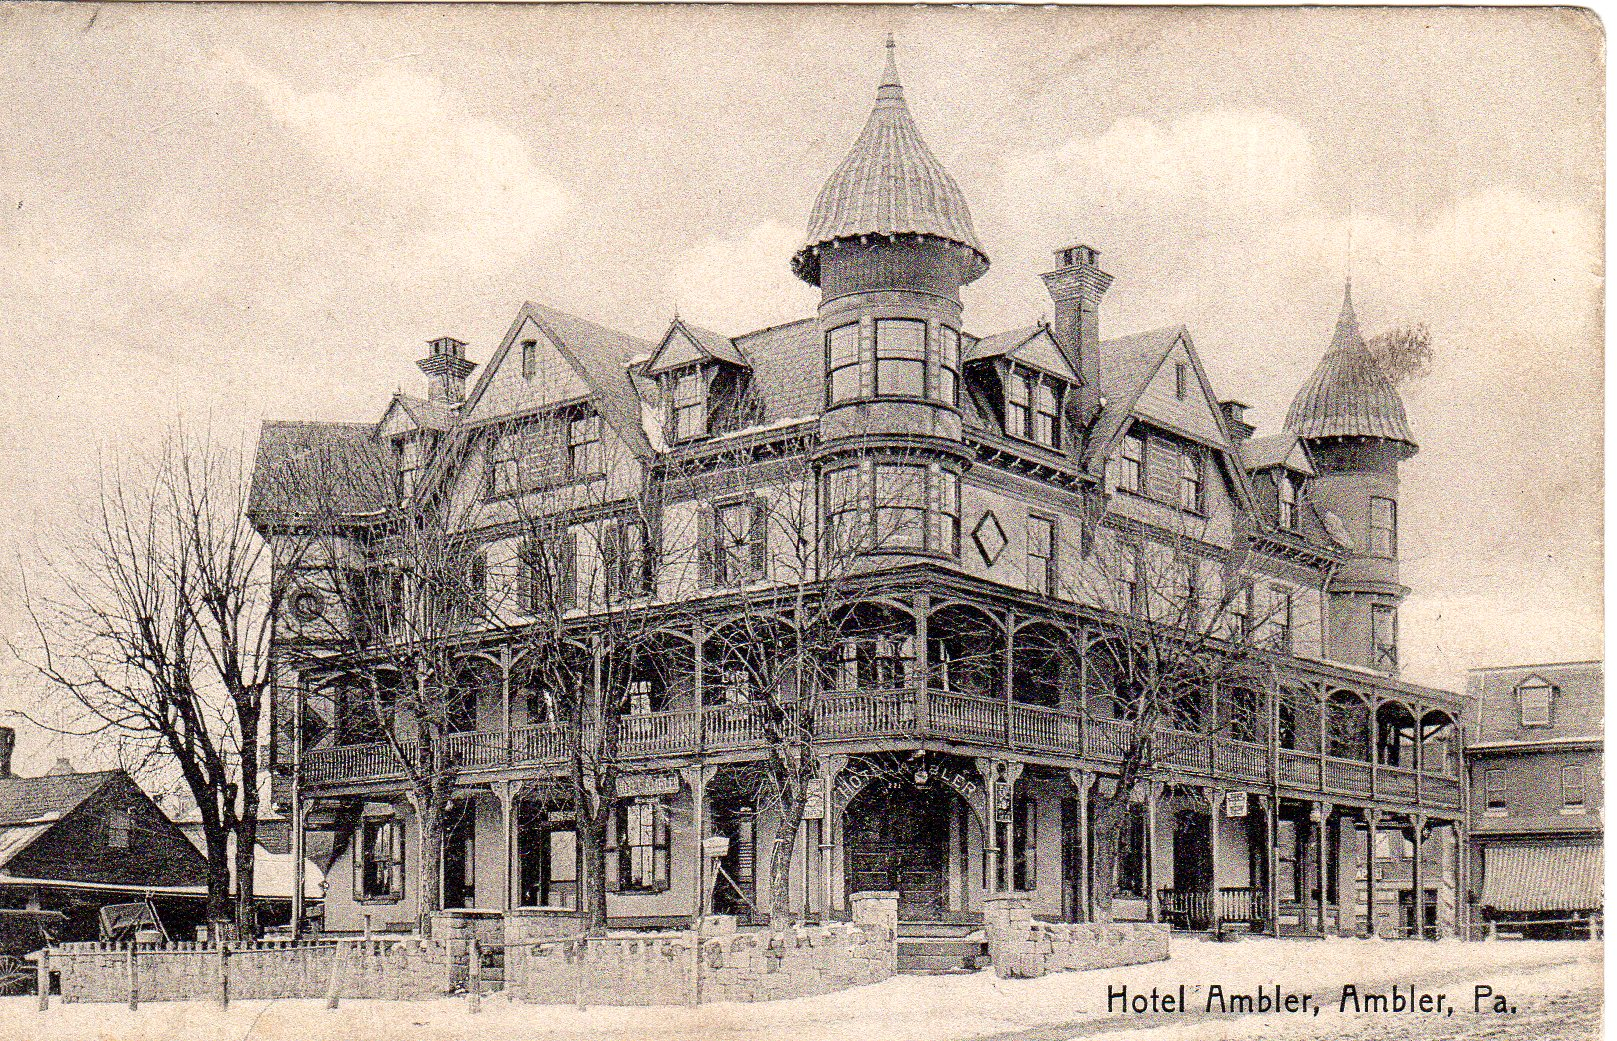 Post Card Collection (E Simon)_2682_15_Hotel Ambler, Ambler, Pa